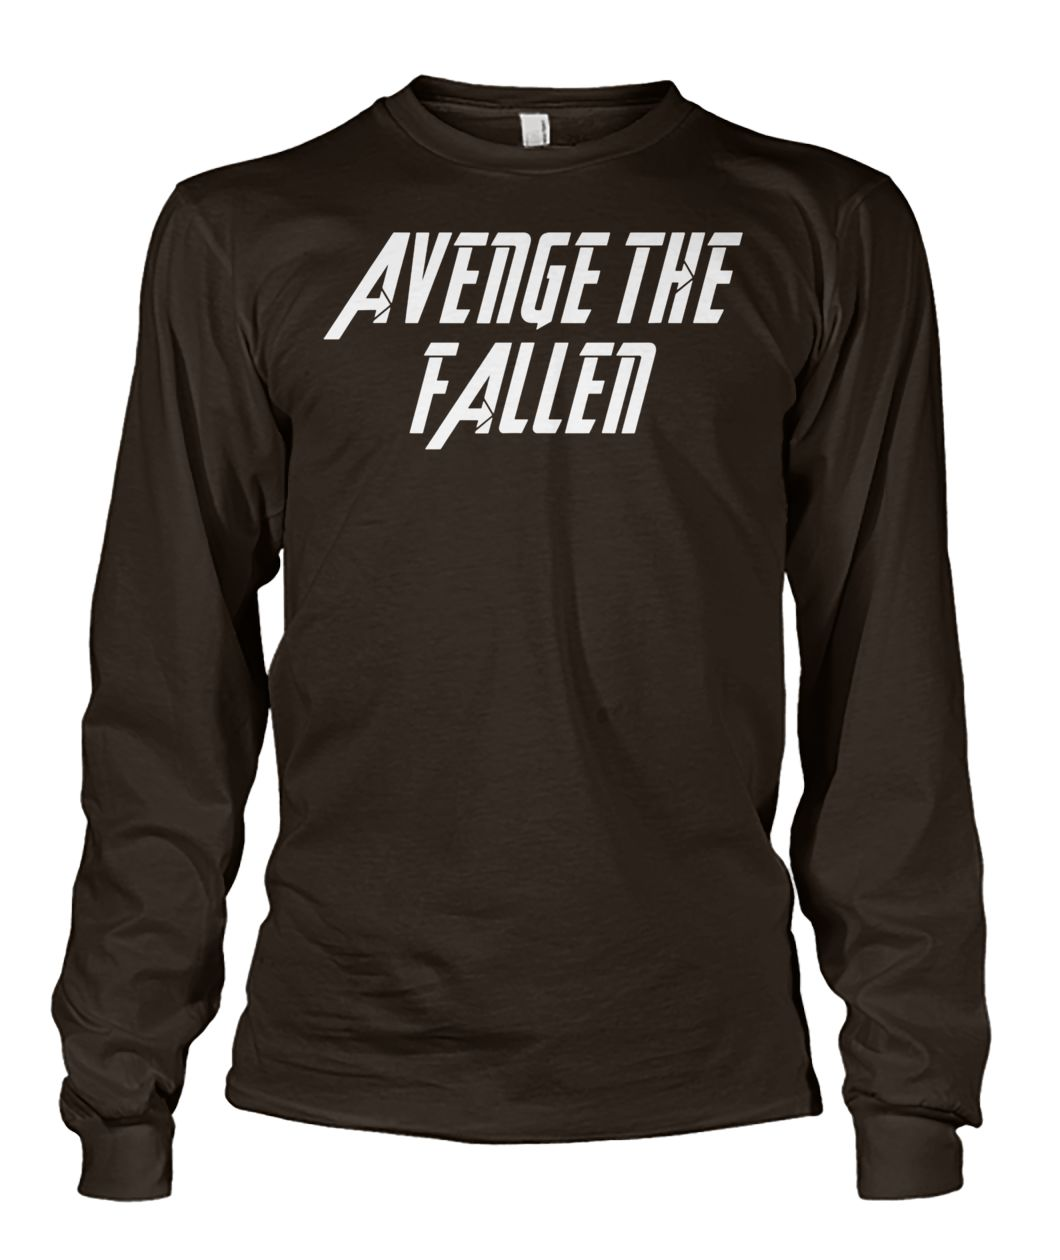 Avengers endgame avenge the fallen unisex long sleeve